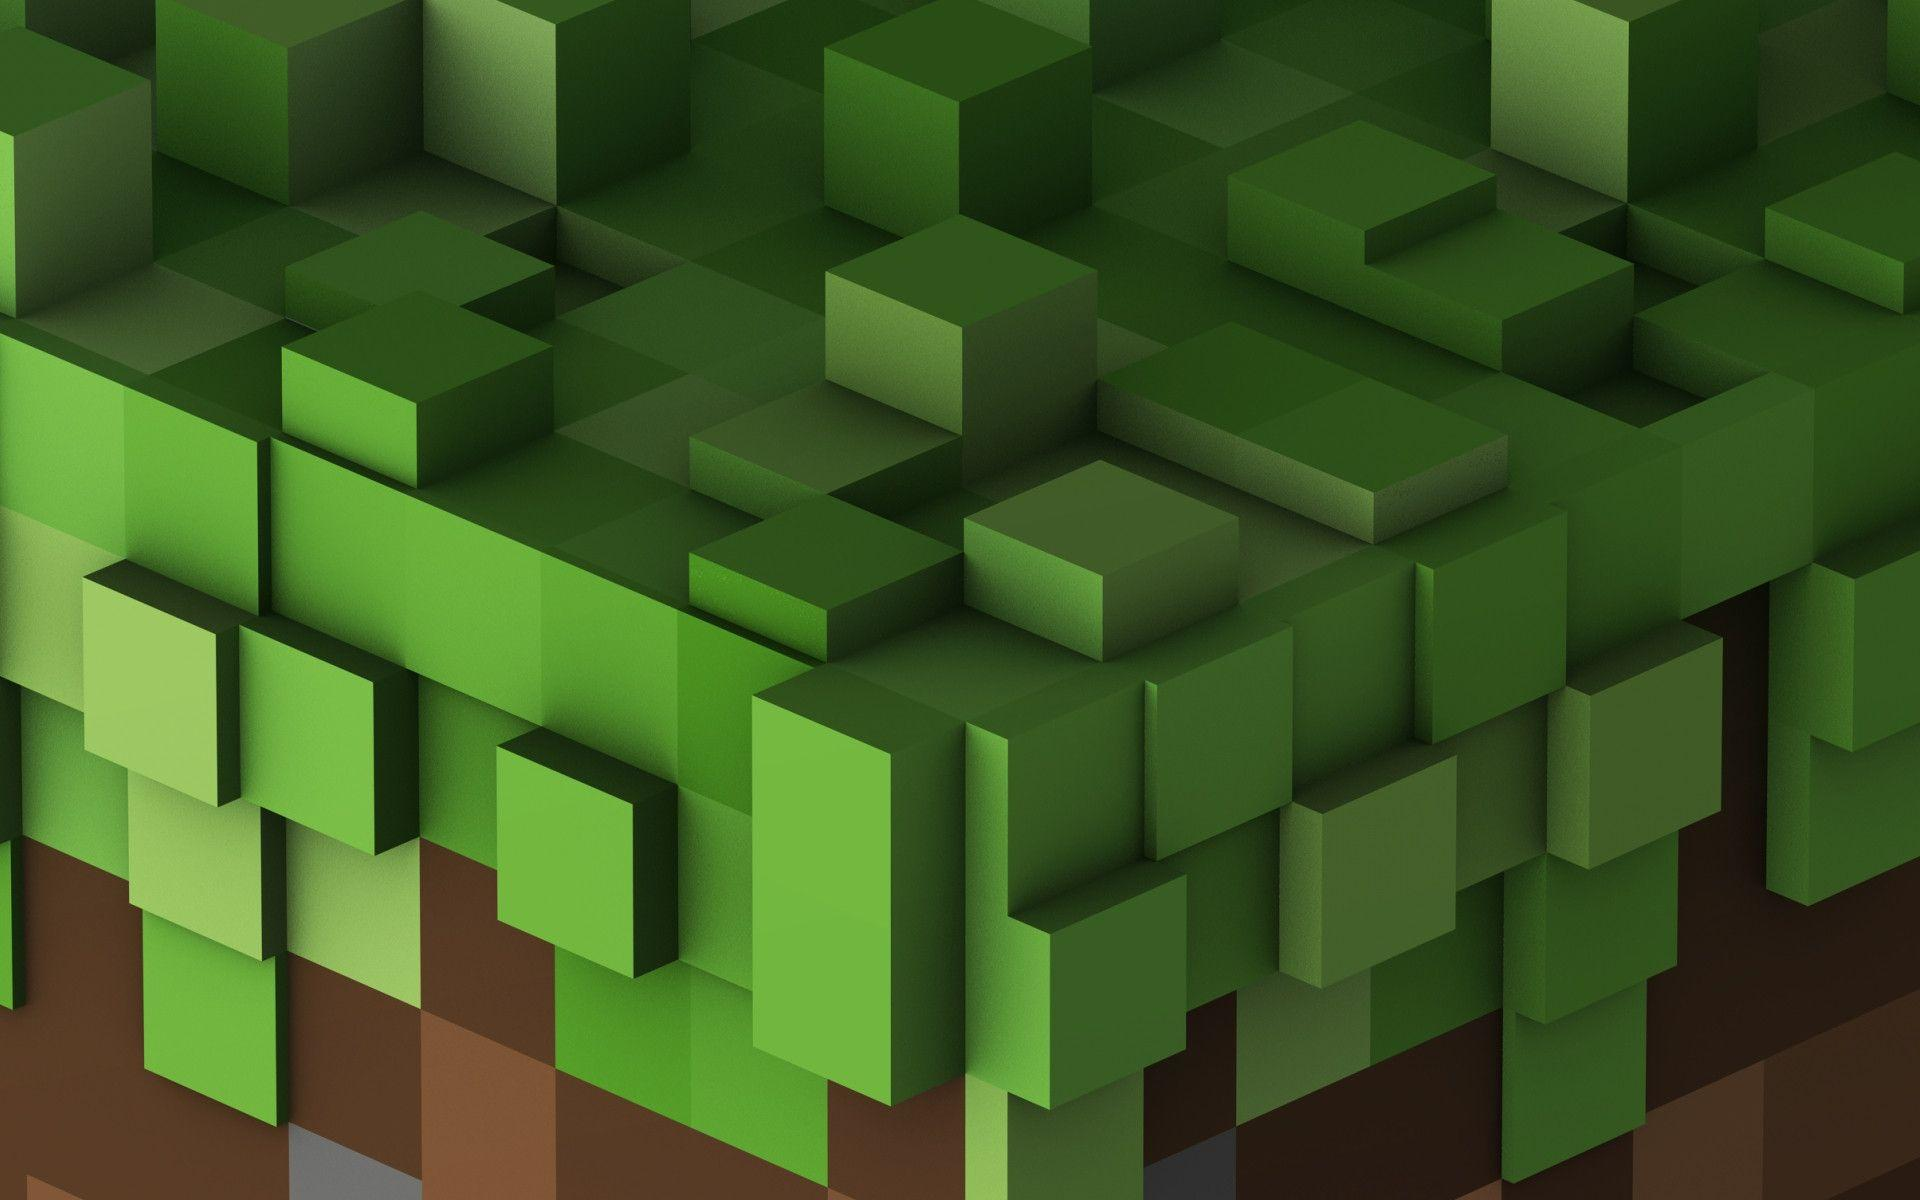 Minecraft Backgrounds HD   Wallpaper Cave 225 Minecraft Wallpapers   Minecraft Backgrounds